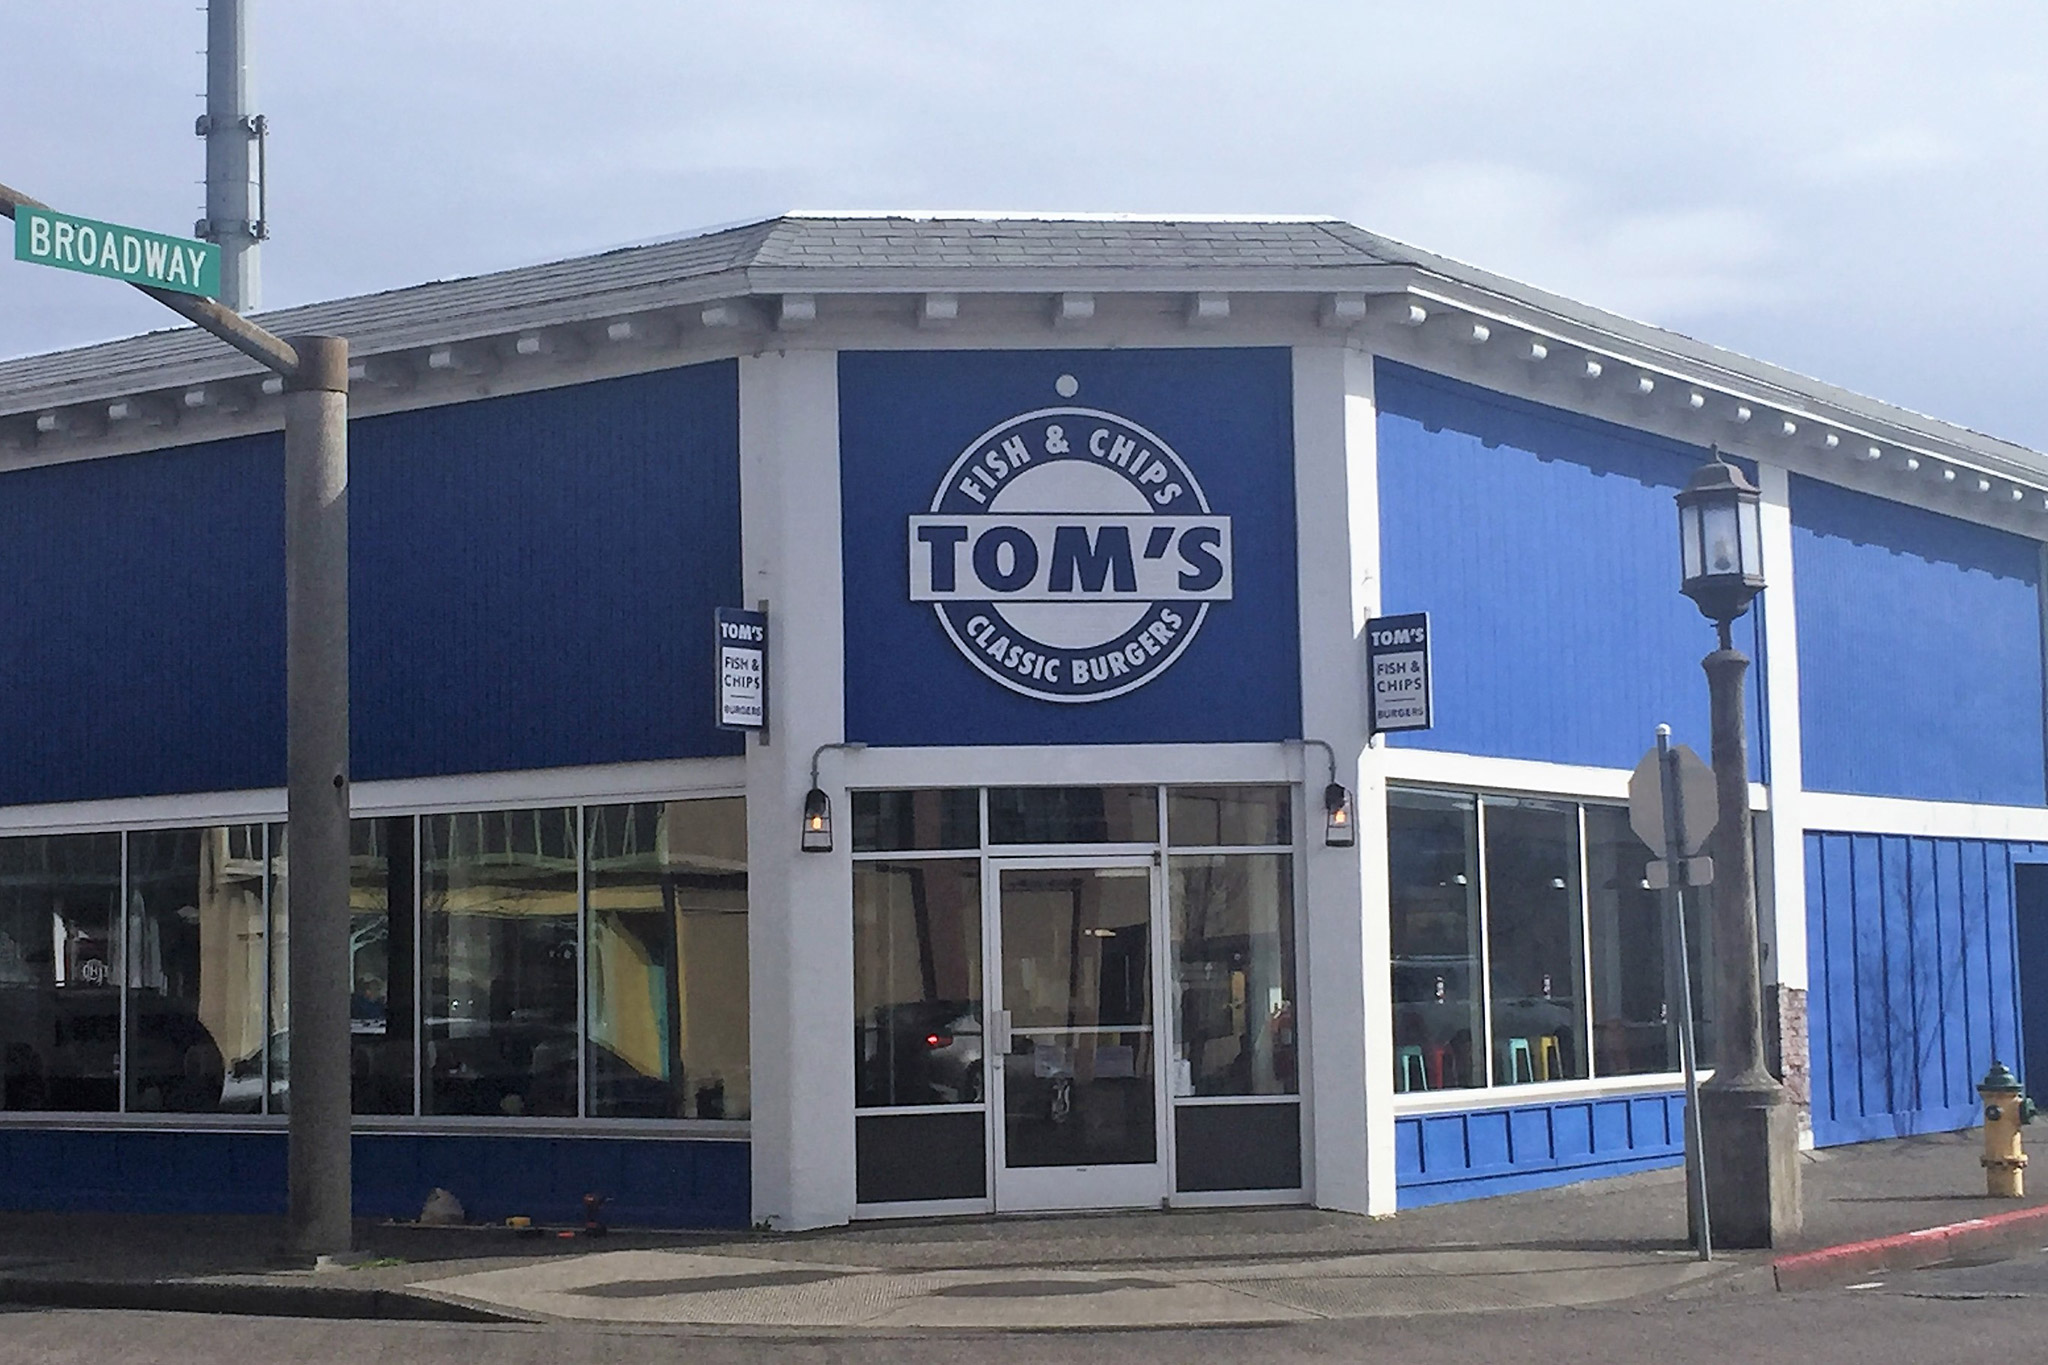 Toms-Seaside-Restaurant-exterior